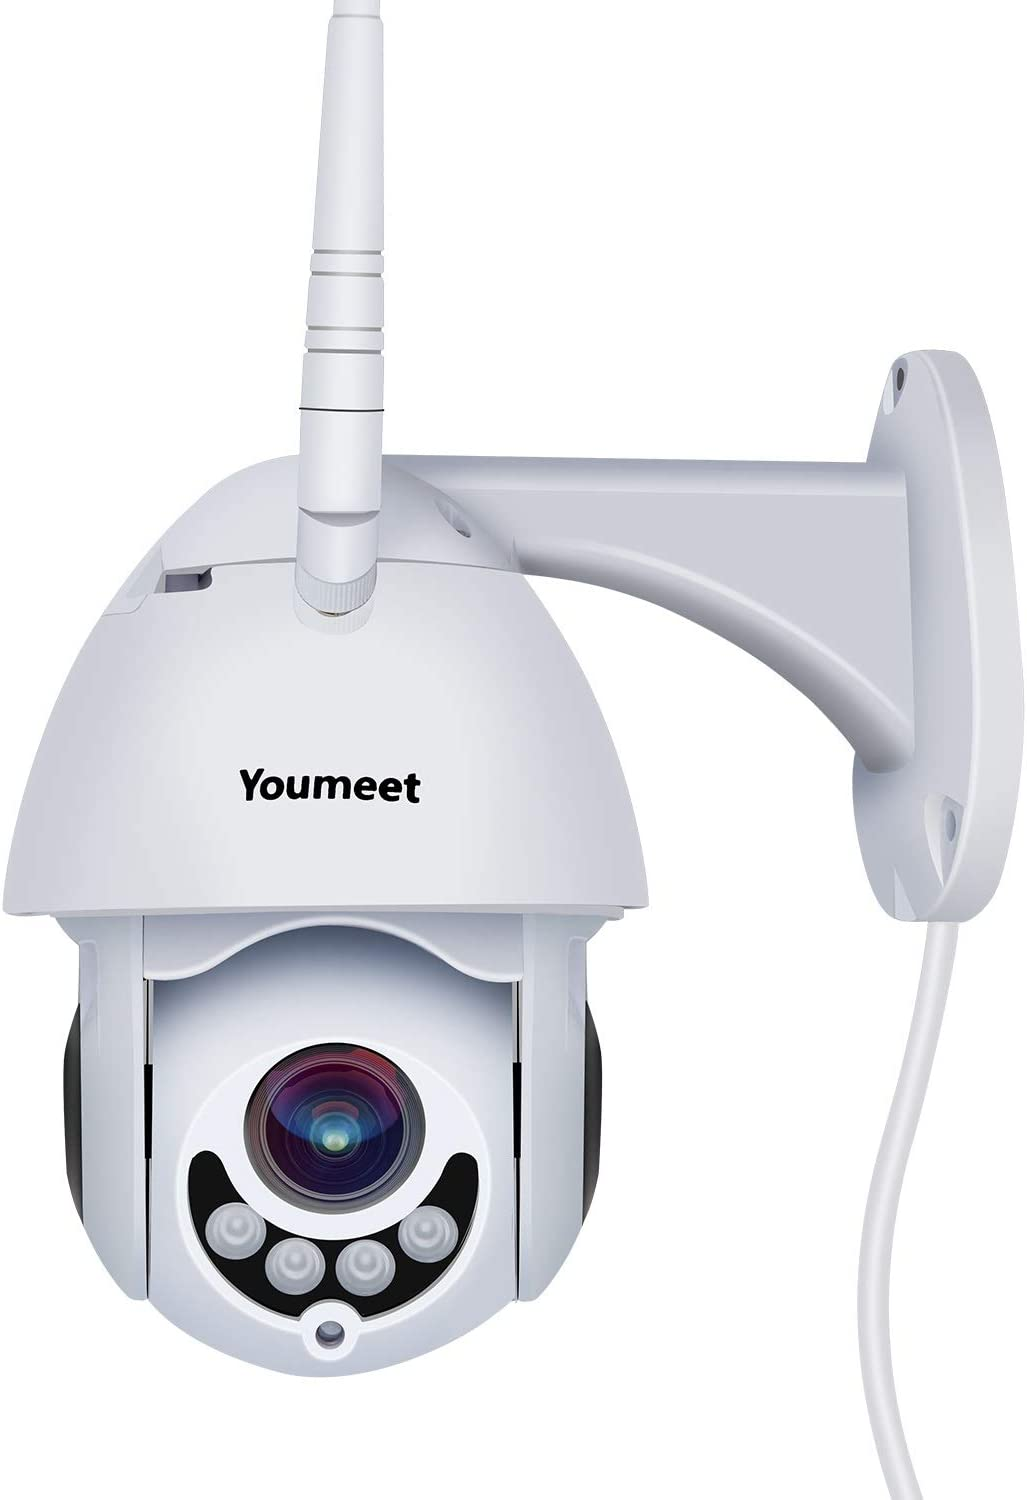 WiFi IP Security Camera,Youmeet 1080P Home Surveillance Cameras,WiFi and Wired Connection,Outdoor camera with Night Vision, 2 Way Audio, Motion Sound Detection, SD Card Included, Works on Smart Phones